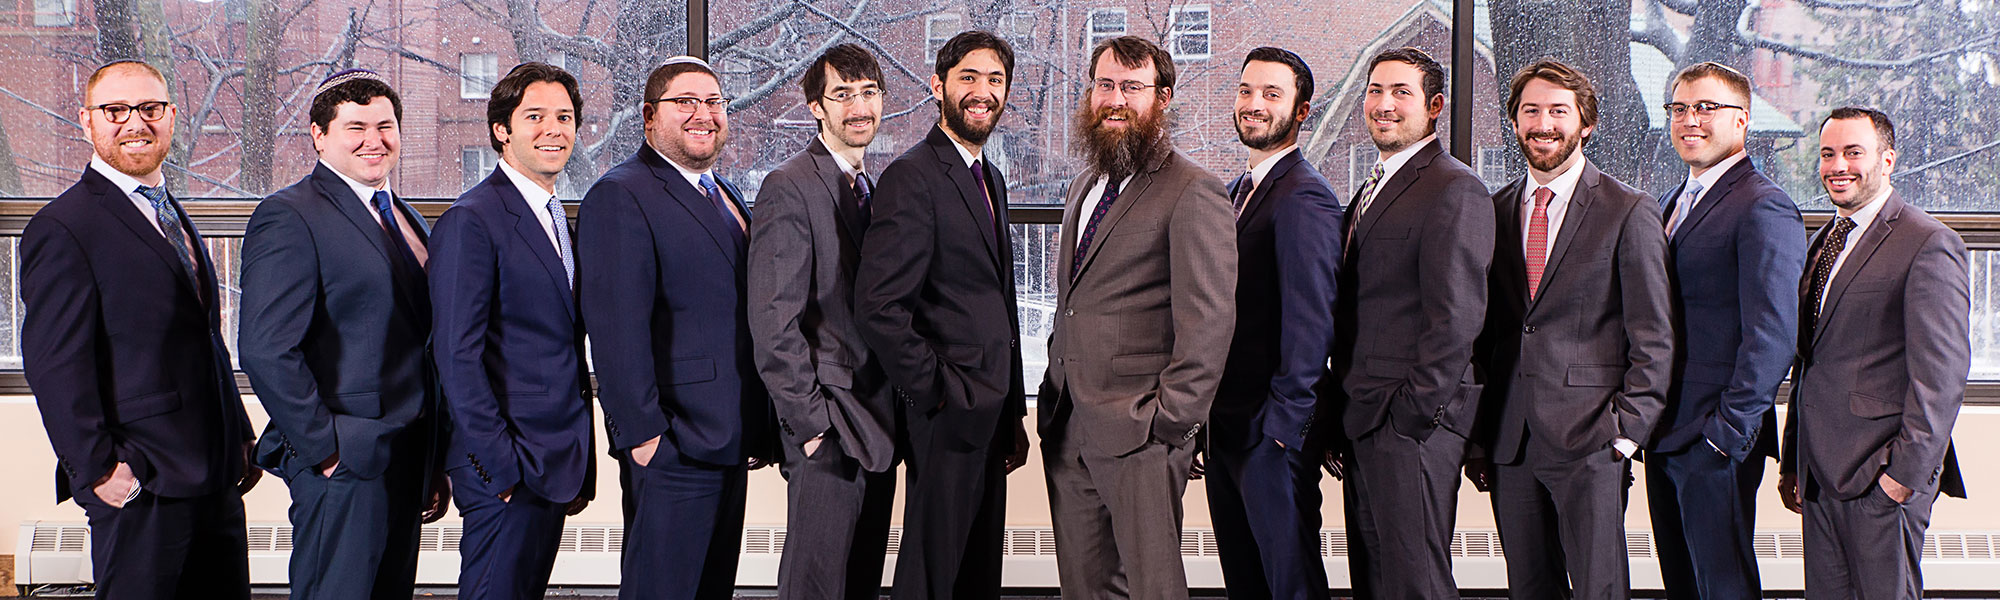 Meet Our Students - Yeshivat Chovevei Torah, Setting the standard in rabbinic education